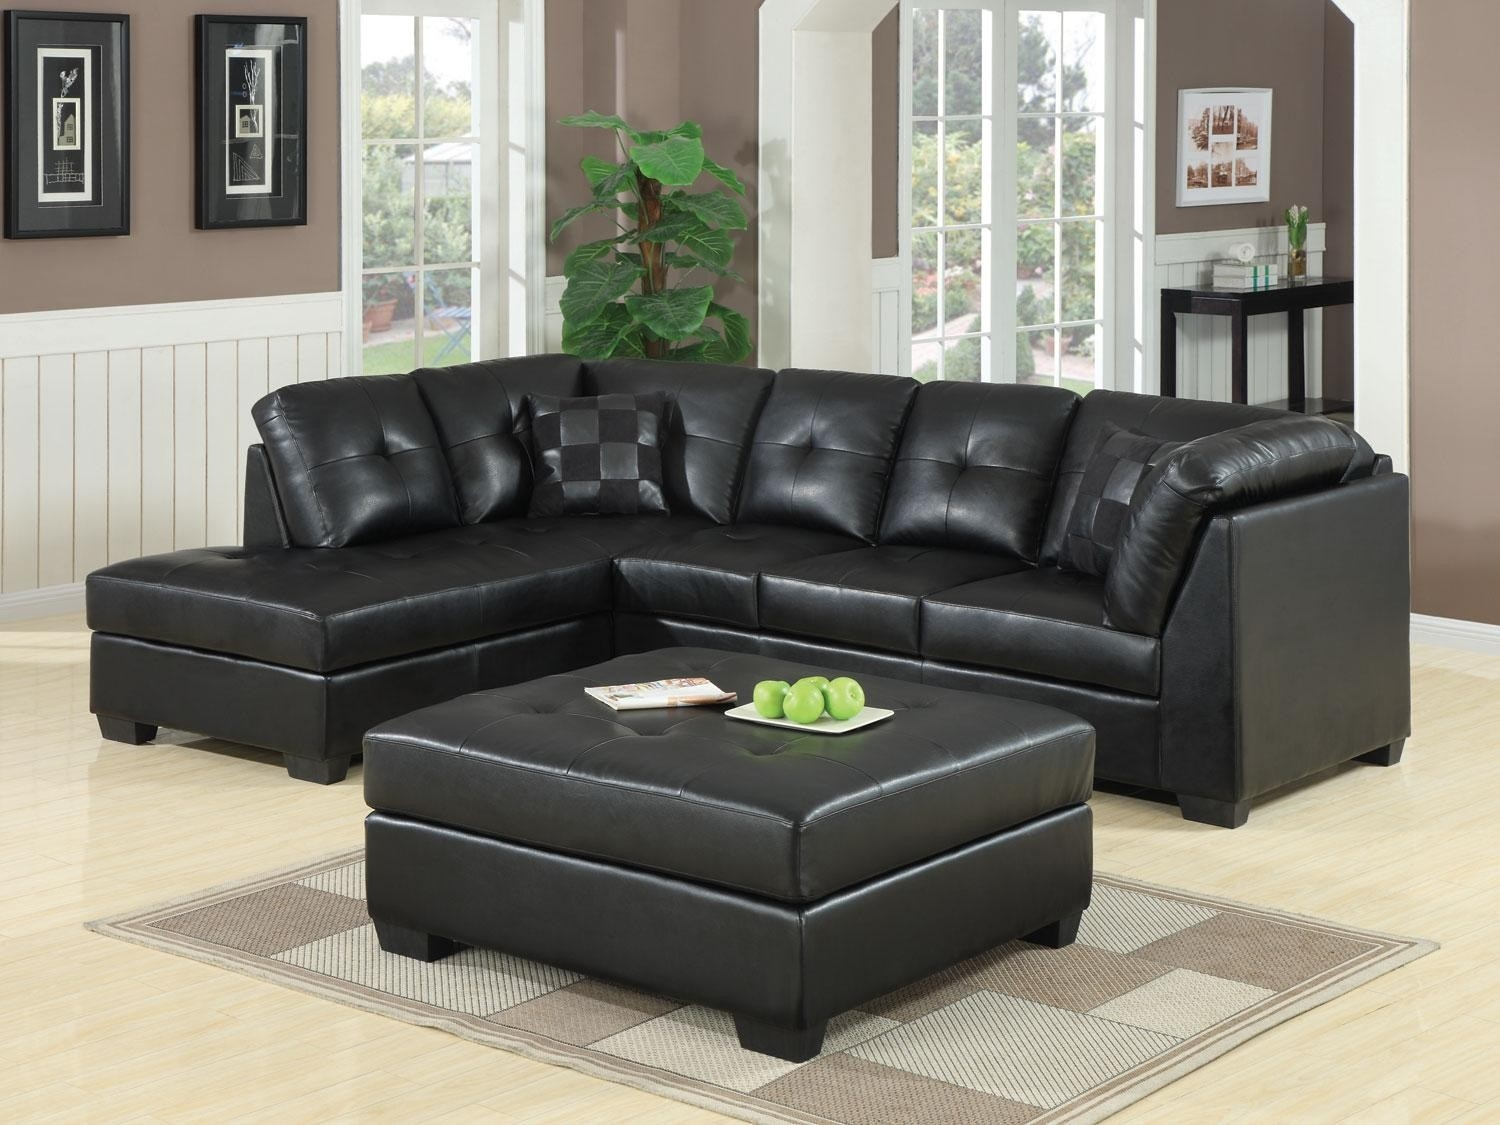 3 sided sectional sofa large convertible into a bed 9 letters 12 ideas of contemporary black leather left